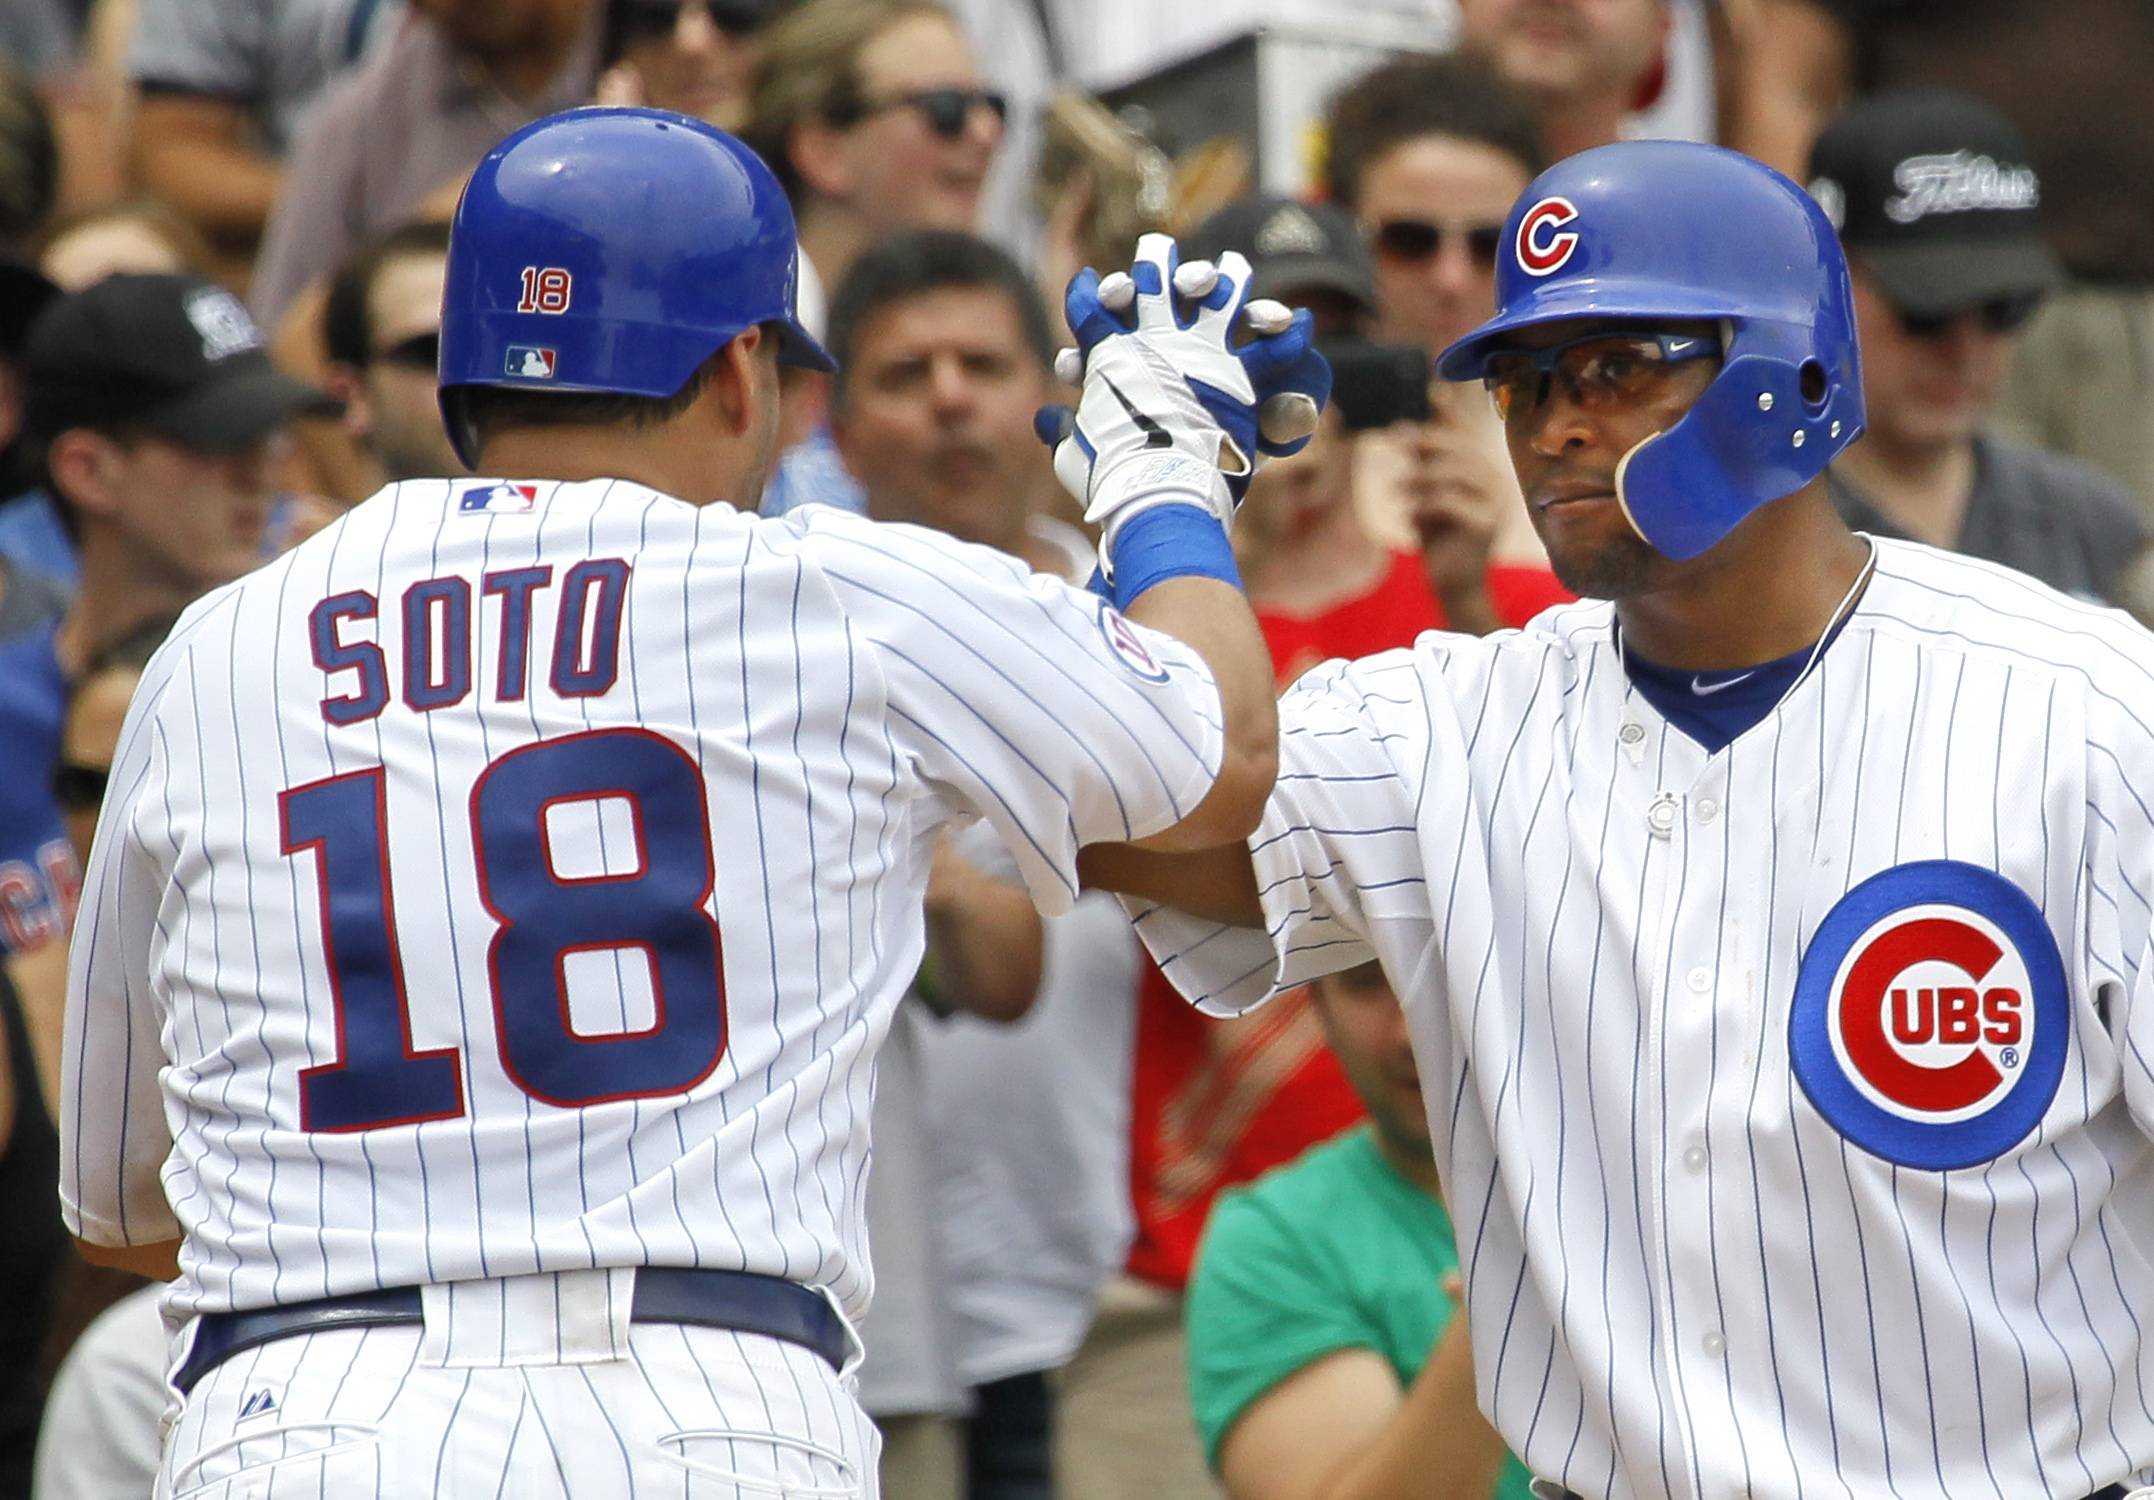 Geovany Soto, left, is greeted at home by Marlon Byrd after his home run off Houston Astros starting pitcher Wandy Rodriguez during the fifth inning Saturday at Wrigley Field.